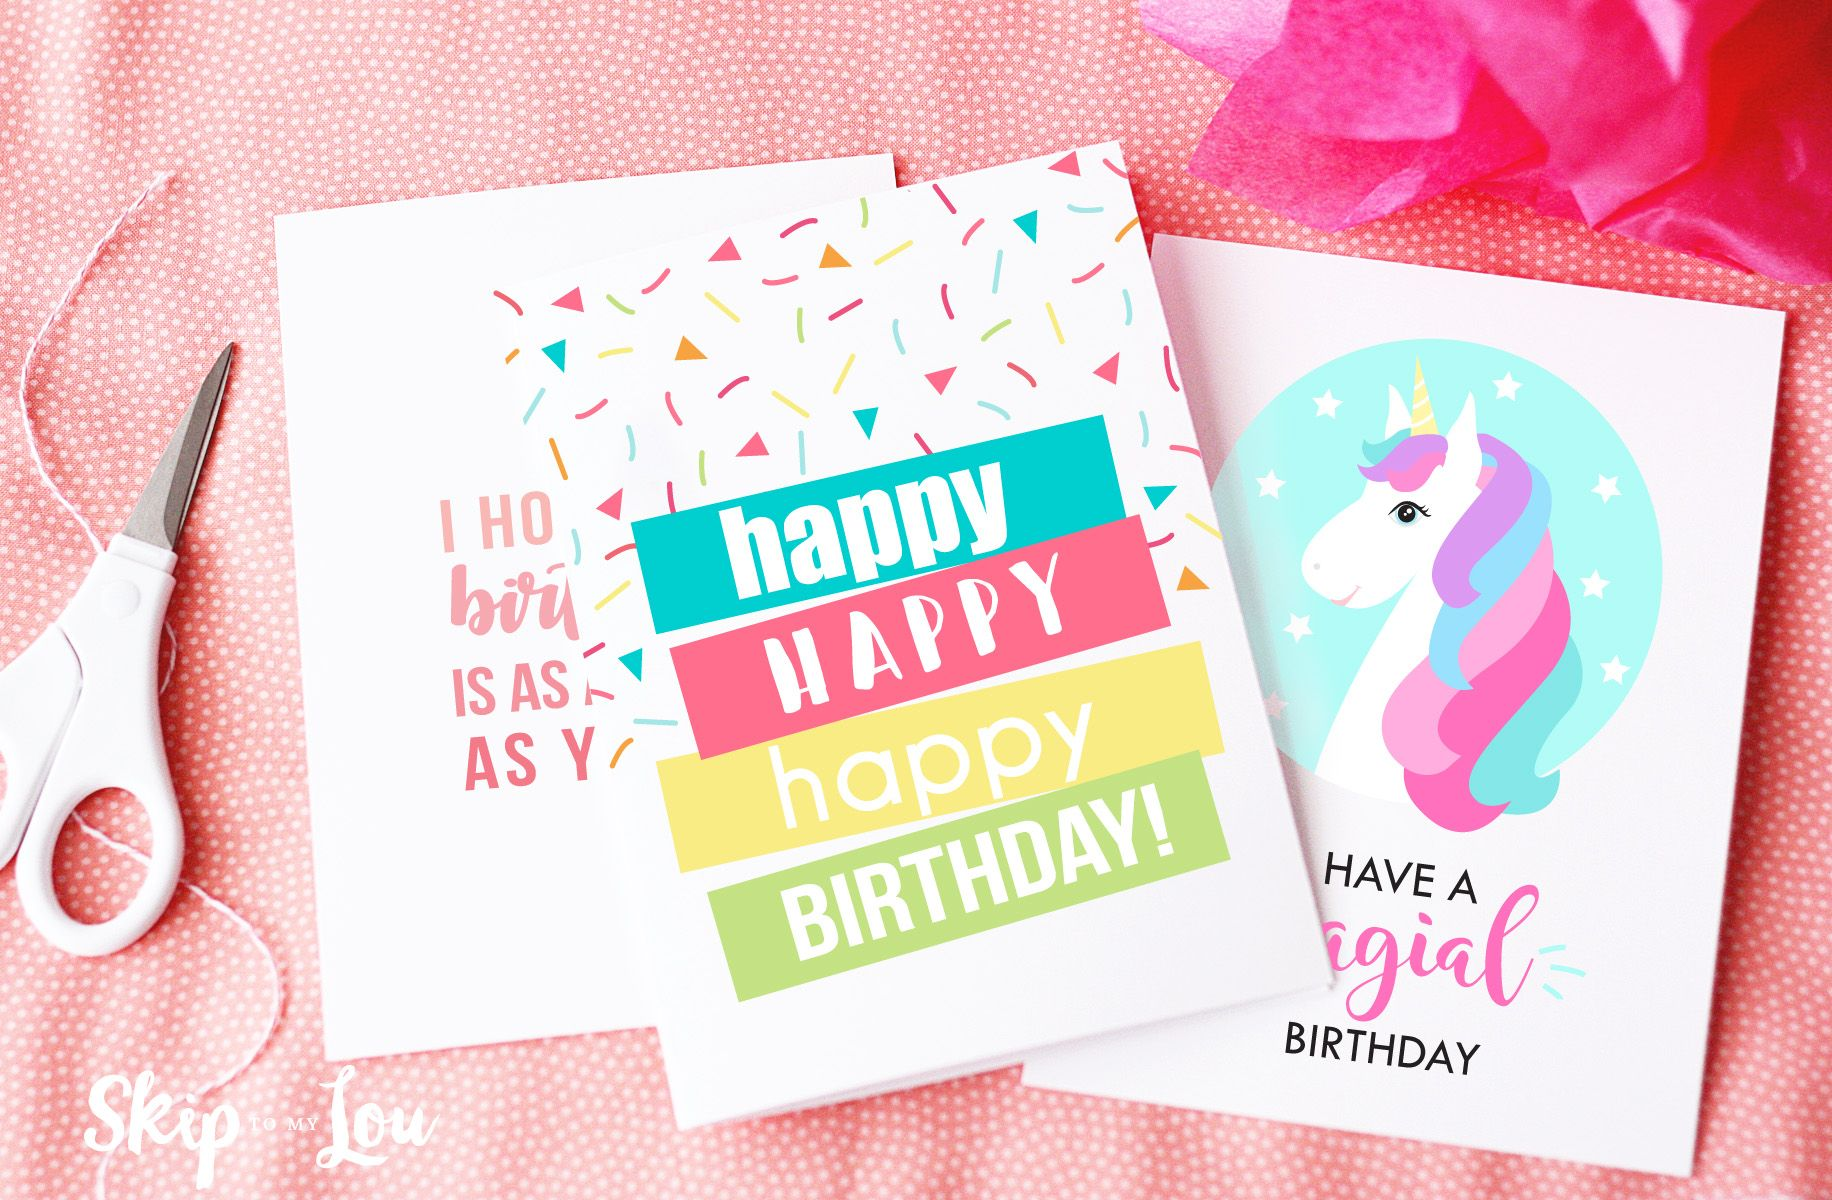 Free Printable Birthday Cards Need A Last Minute Card Print This At Home And Youre All Set For Sweet Gift Freeprintable